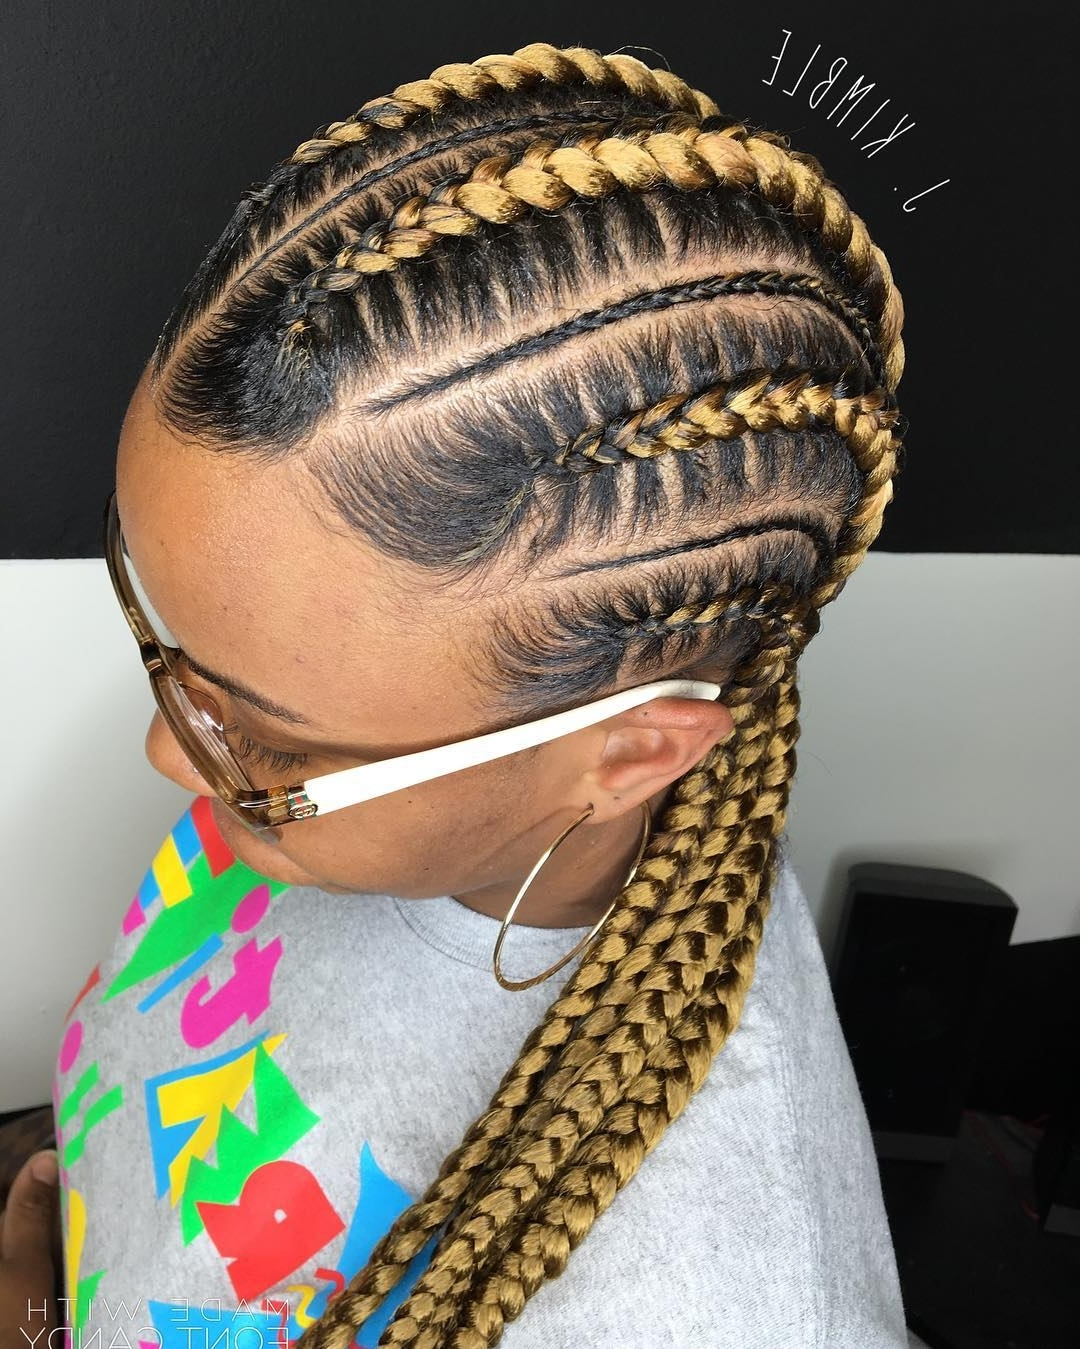 70 Best Black Braided Hairstyles That Turn Heads In 2018 Within Most Current Braided Rasta Hairstyles (View 3 of 15)